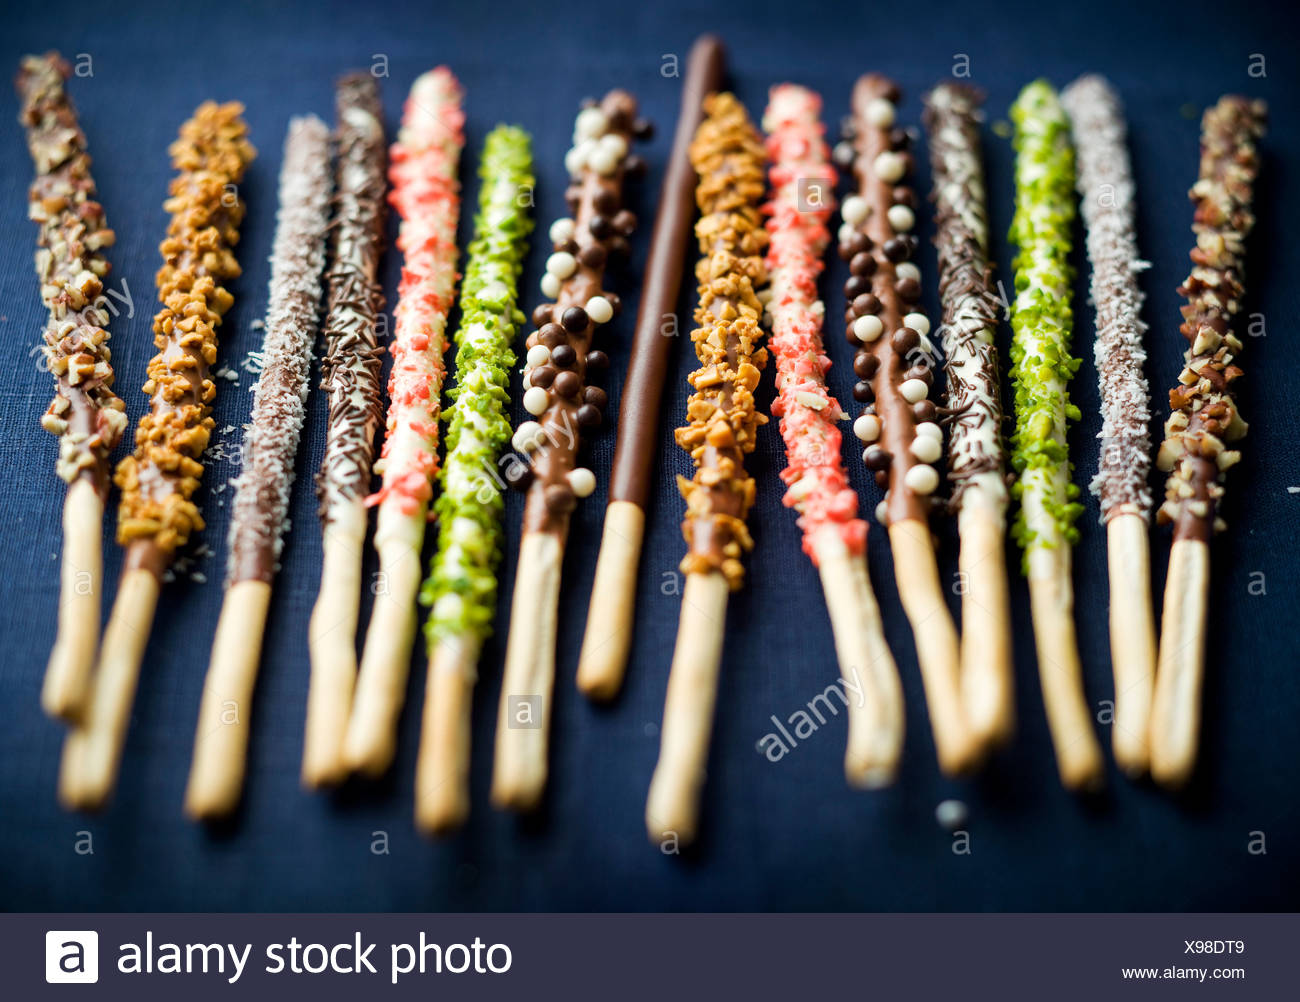 Different flavored chocolate Mikados - Stock Image